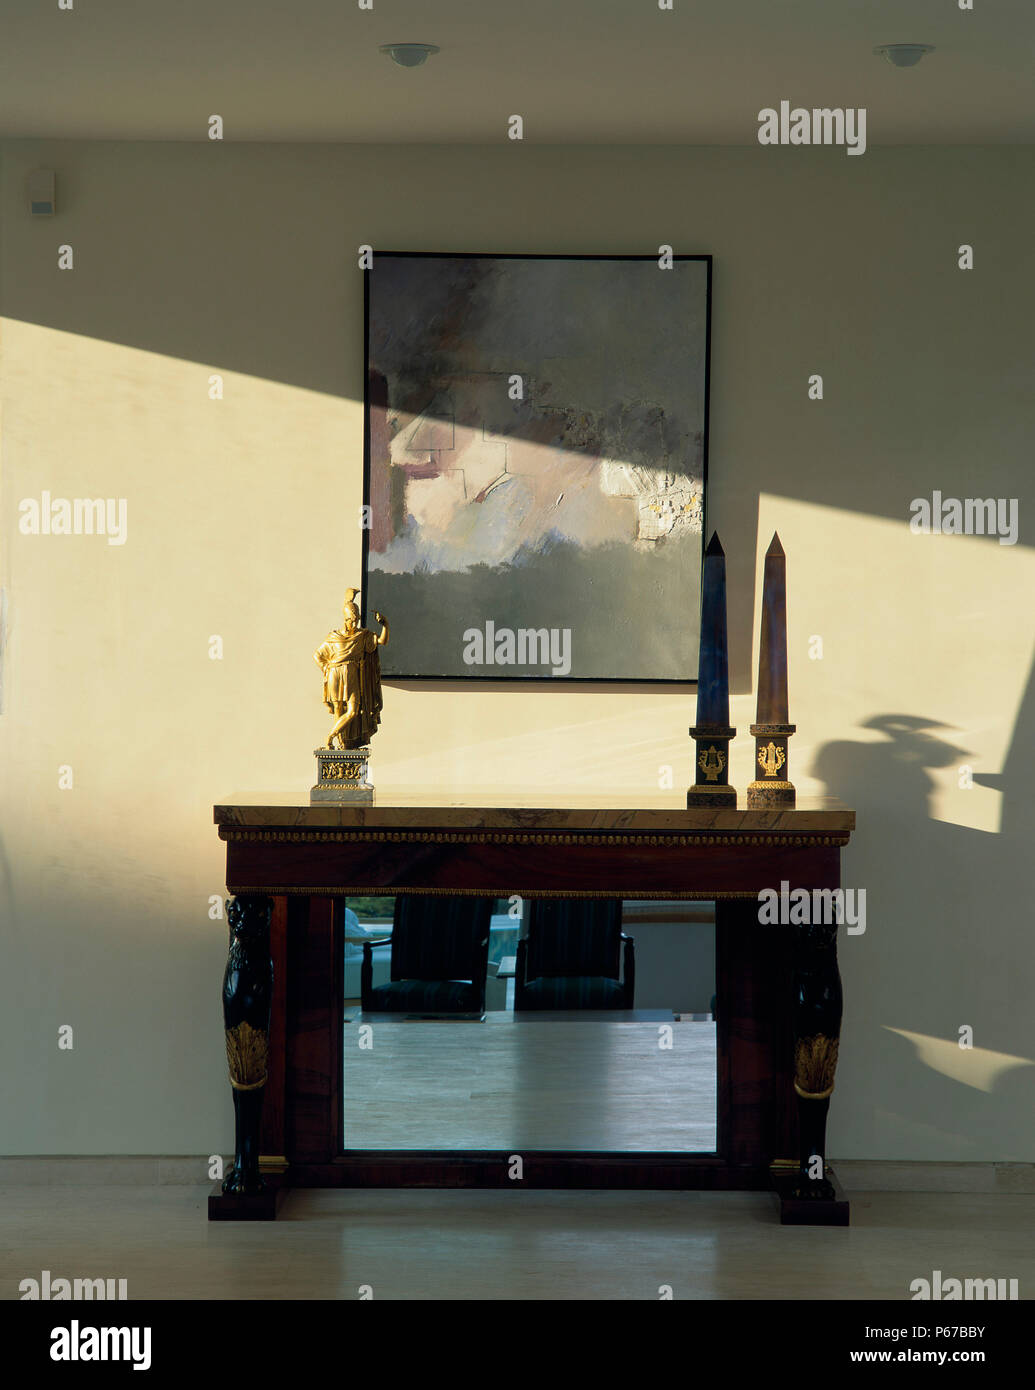 View of a mantle adorned with ornaments - Stock Image